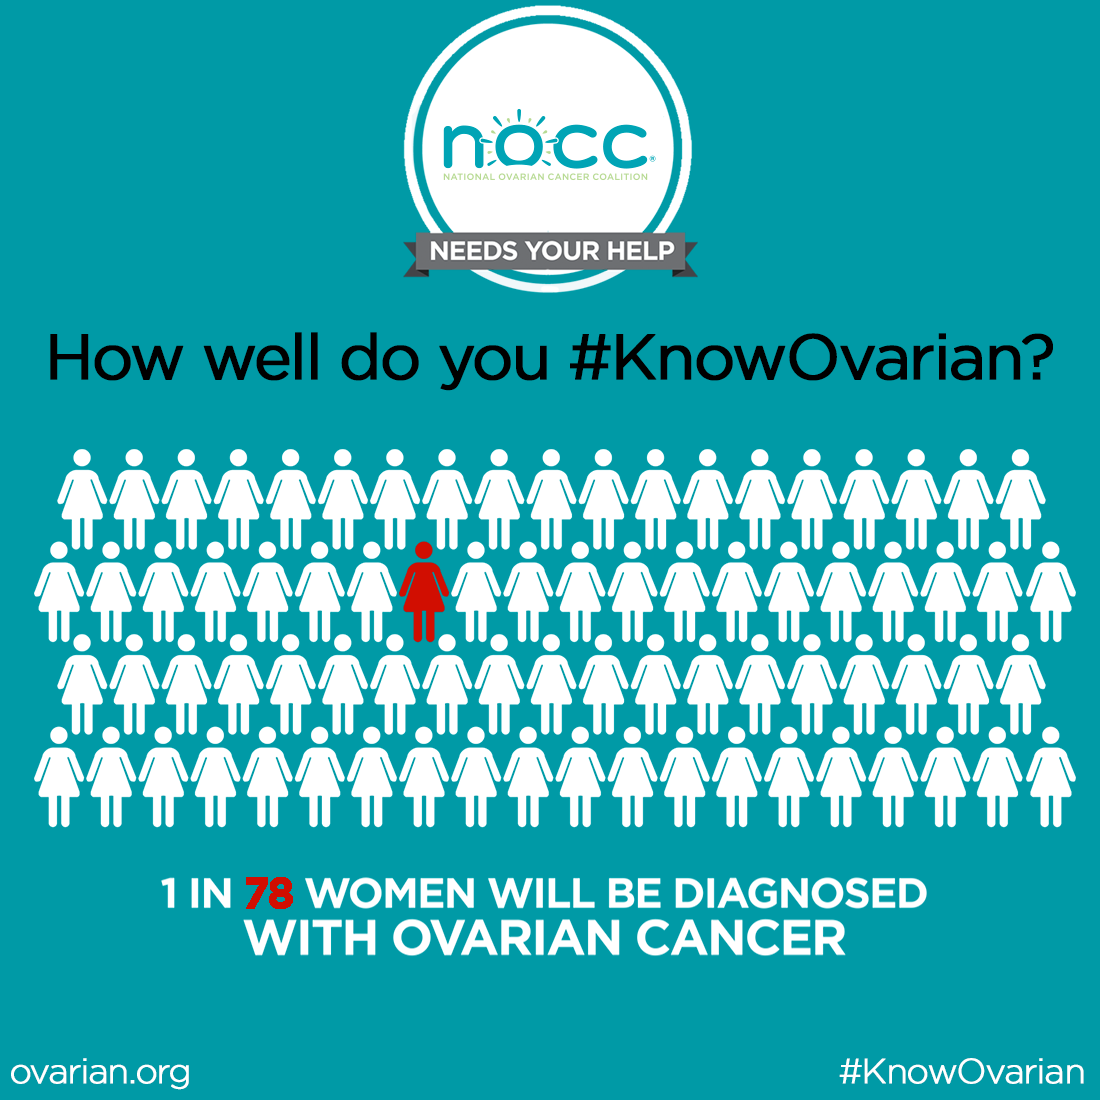 The National Ovarian Cancer Coalition S 2018 September Campaign Aims To Activate Communities To Help Raise Awareness Of The Disease